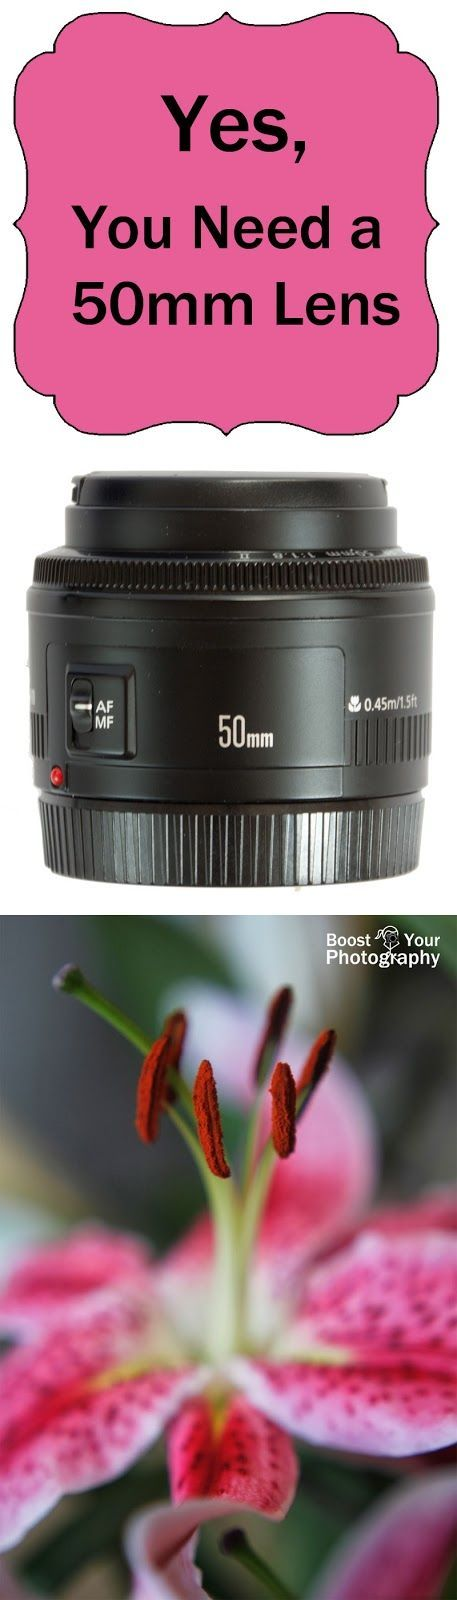 Photography Gear, Camera, Lens, Equipment, Photography Tips, Photography Tutorials